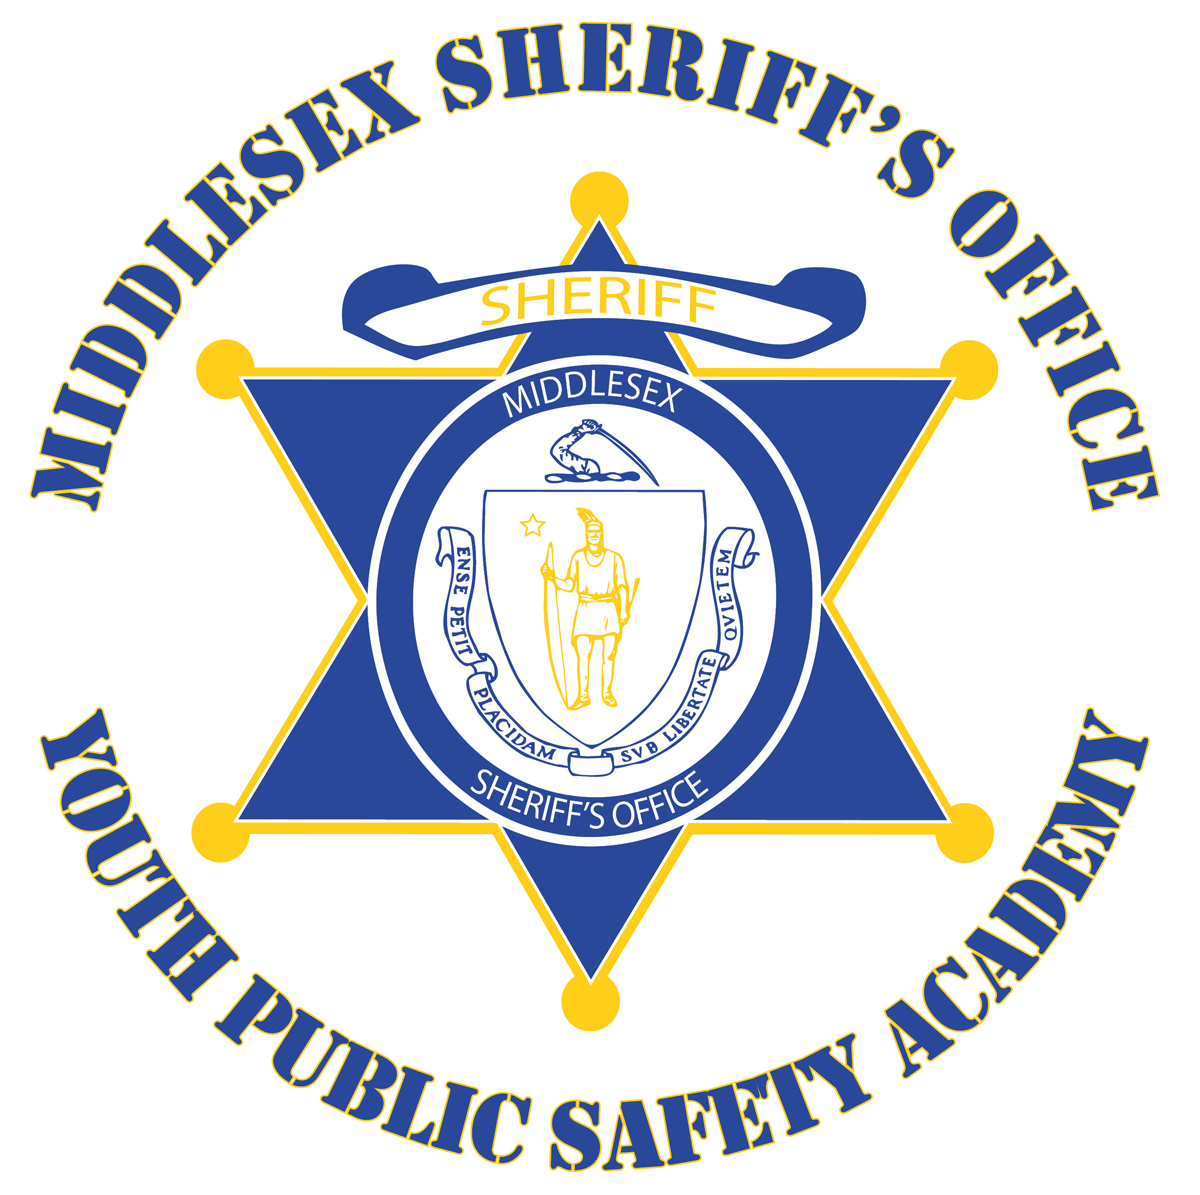 Community Safety Volunteer Academy: Registration For 2015 Middlesex Sheriff's Office Youth